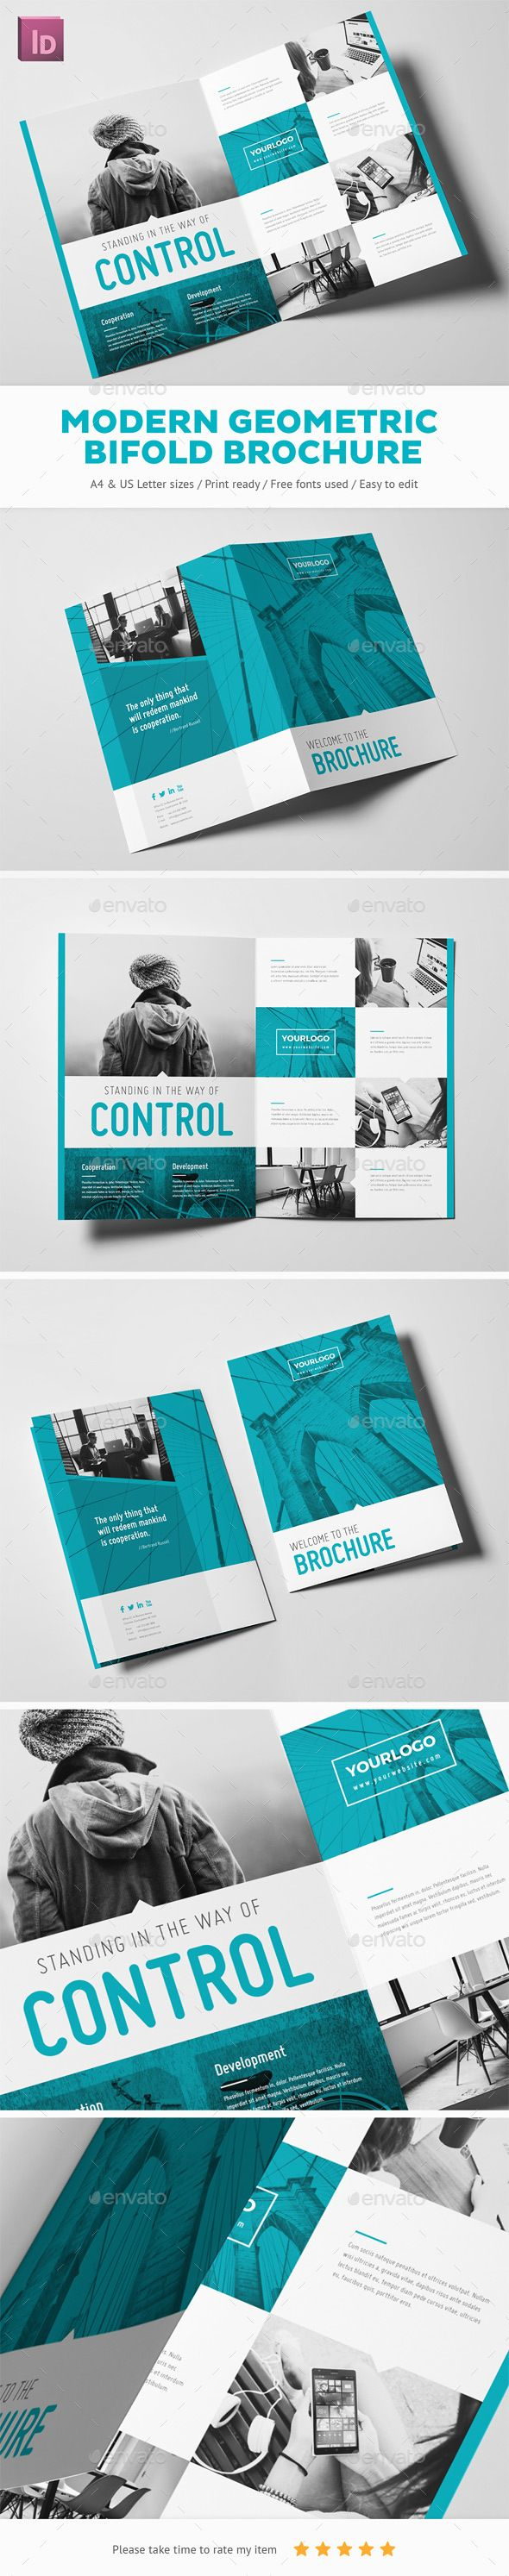 Modern Geometric Bifold Brochure Template InDesign INDD. Download ...